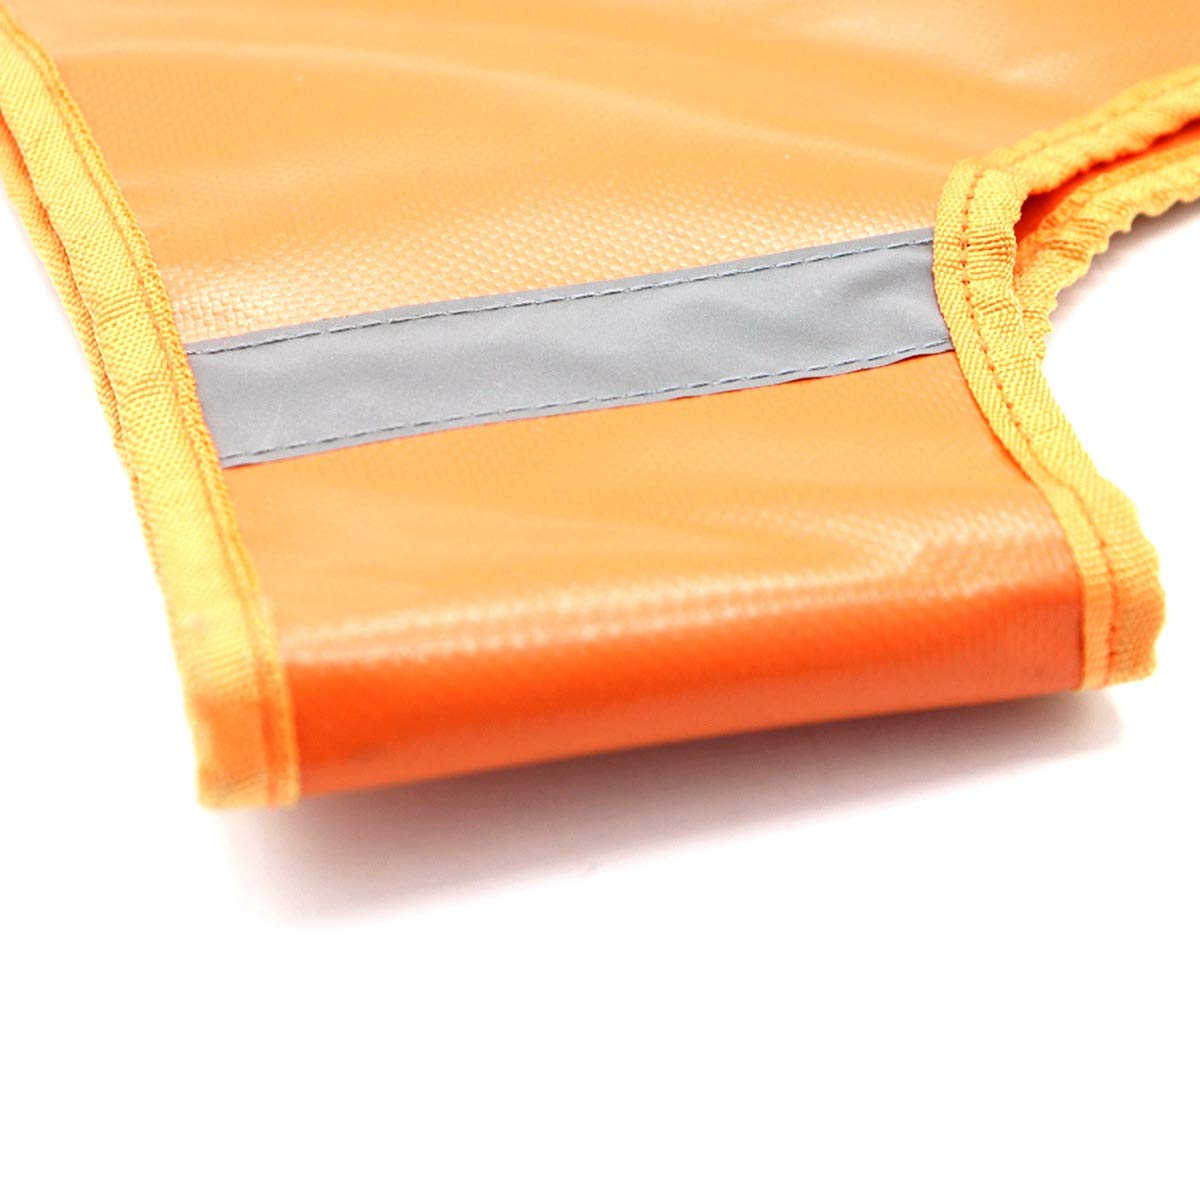 PVC Velcro Bullet-proof Clothing Emergency Warning Buffer Bulletproof Pad for Car HERCHR Winch Cable Safety Blanket